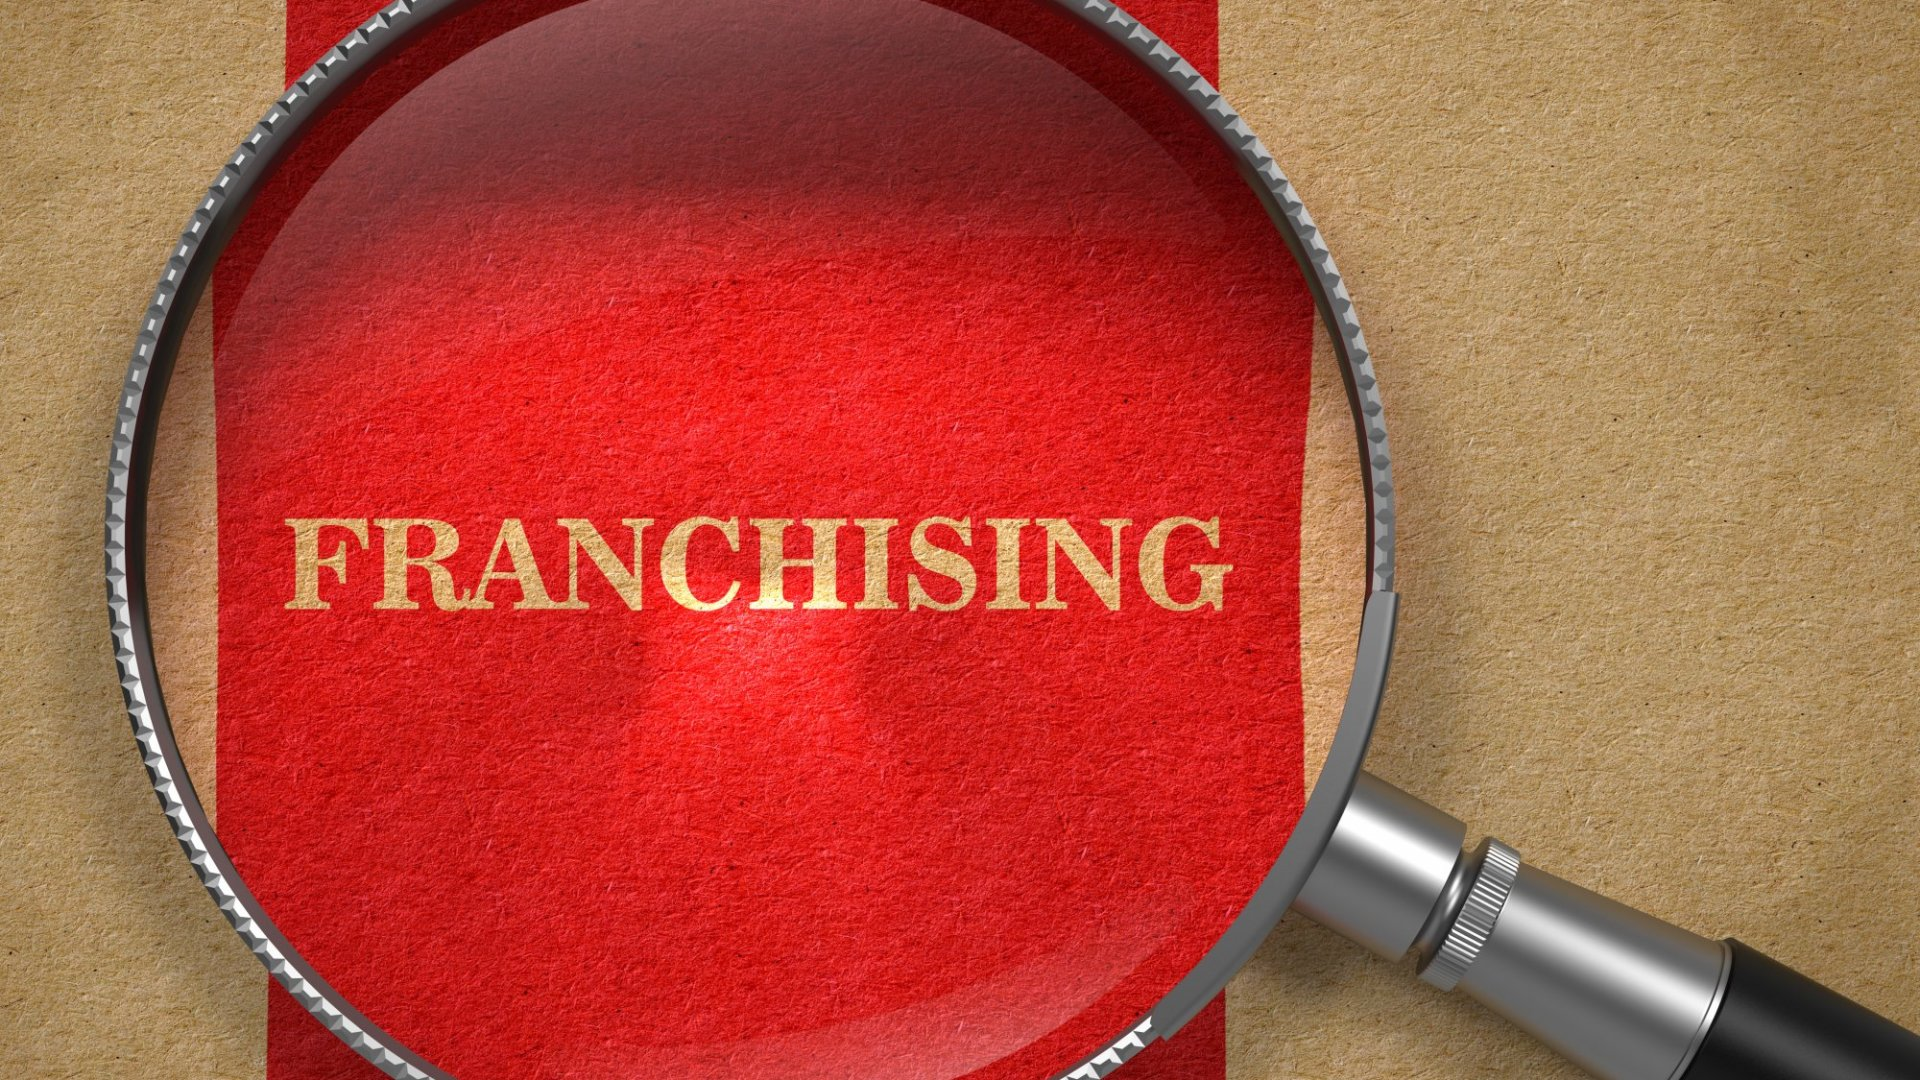 3 Reasons It's Time to Franchise Your Business